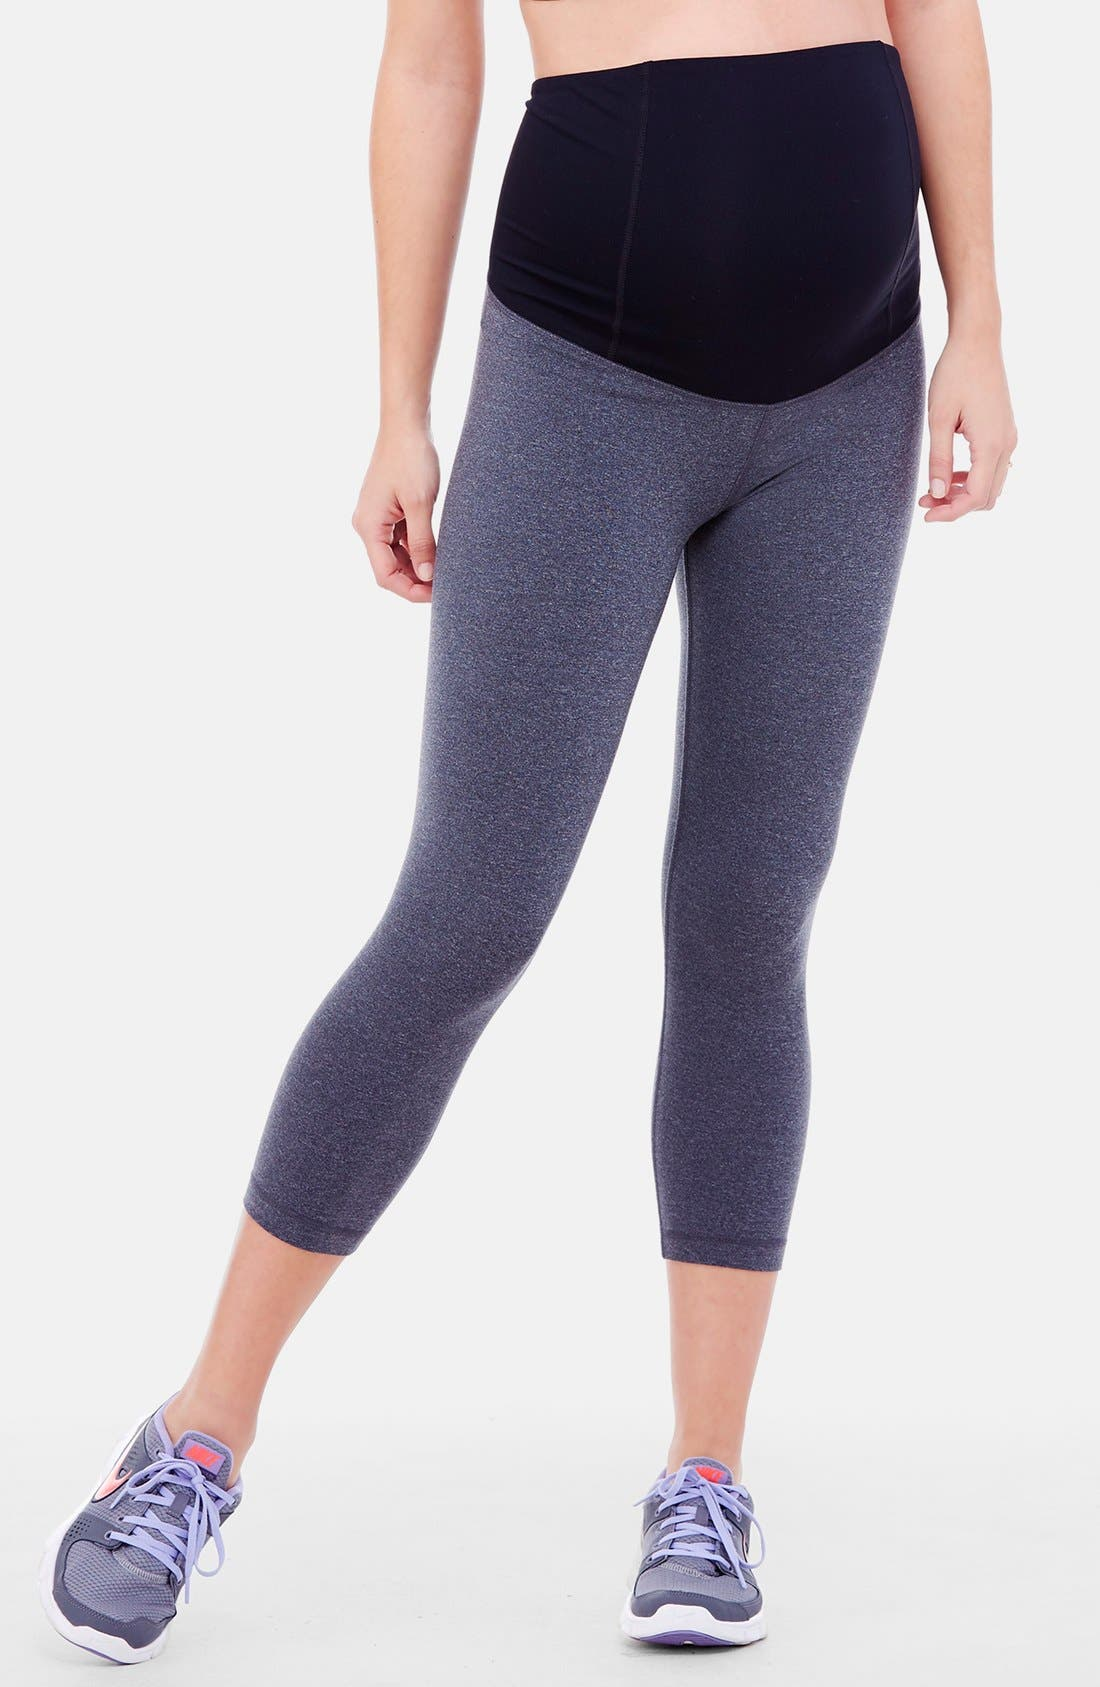 Women's Ingrid & Isabel Active Maternity Capri Pants With Crossover Panel